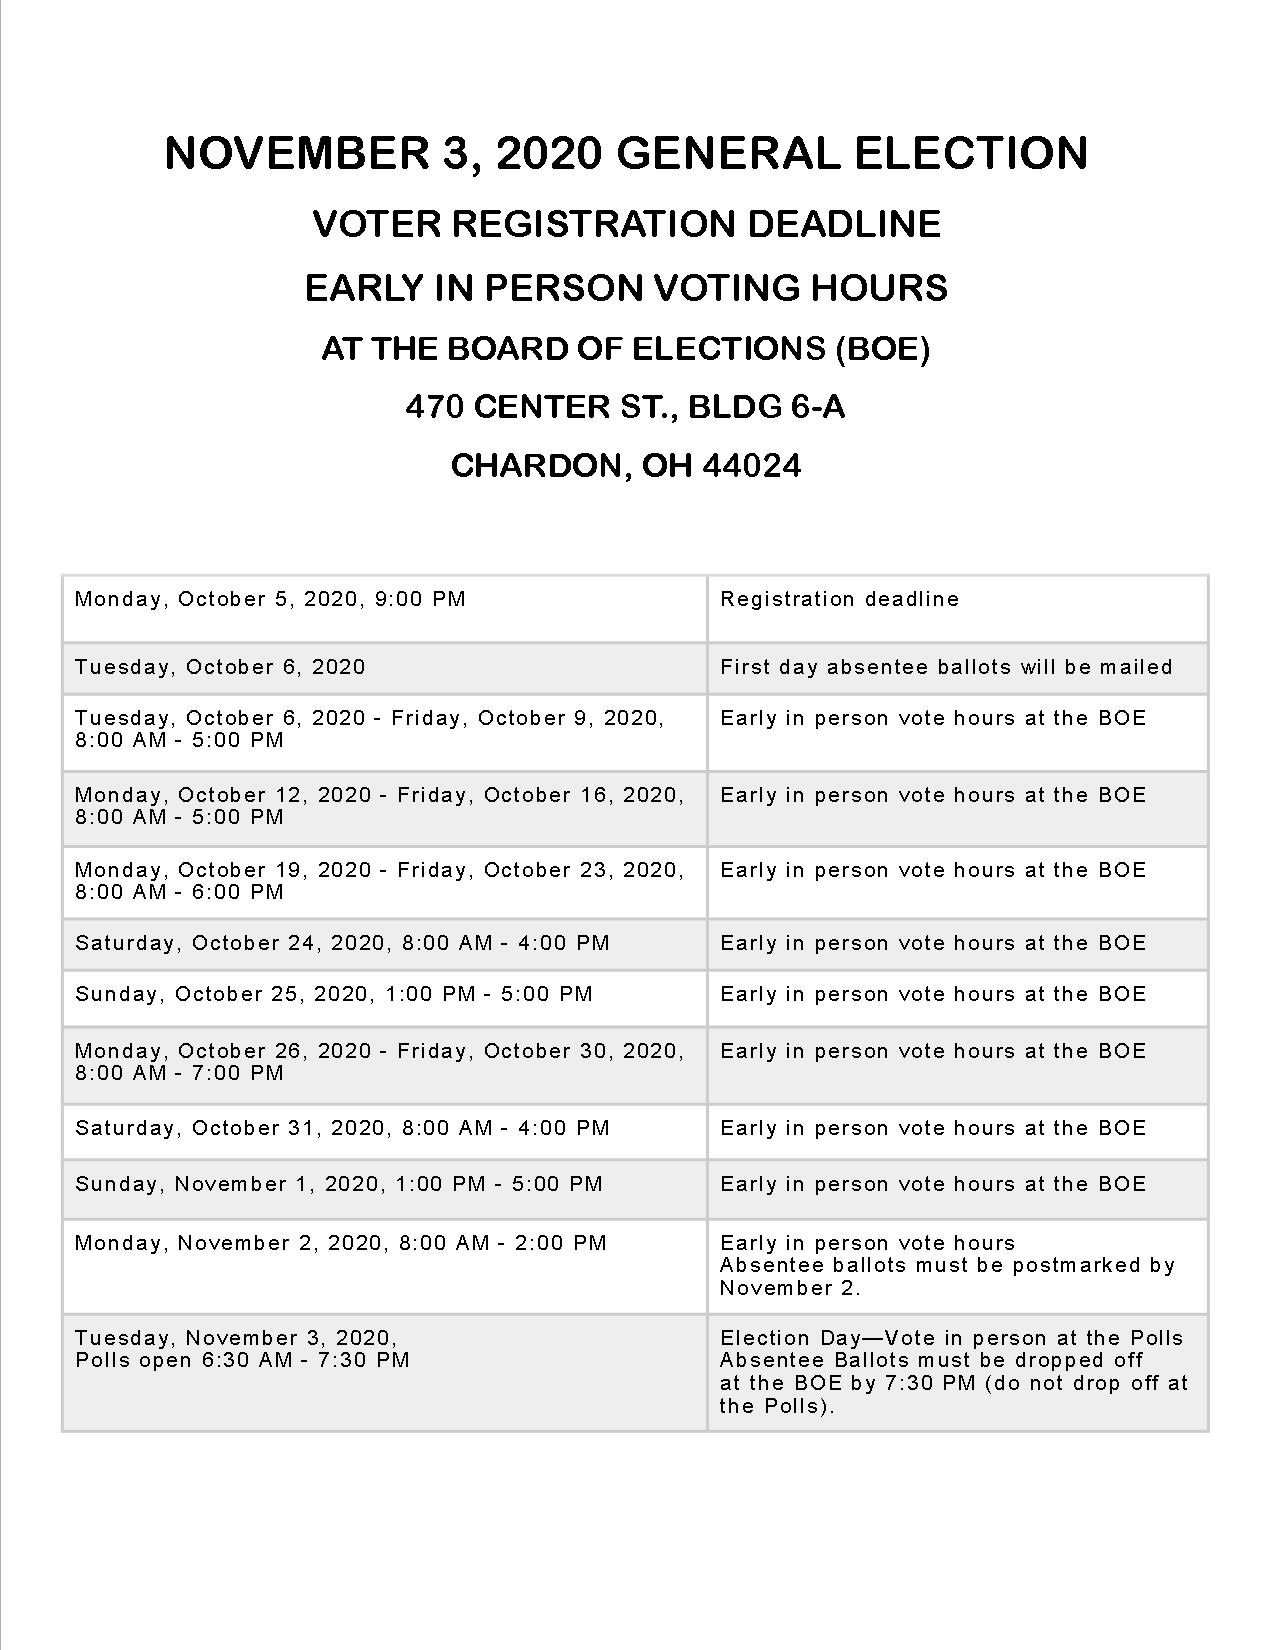 Geauga County BOE Early Voting Information